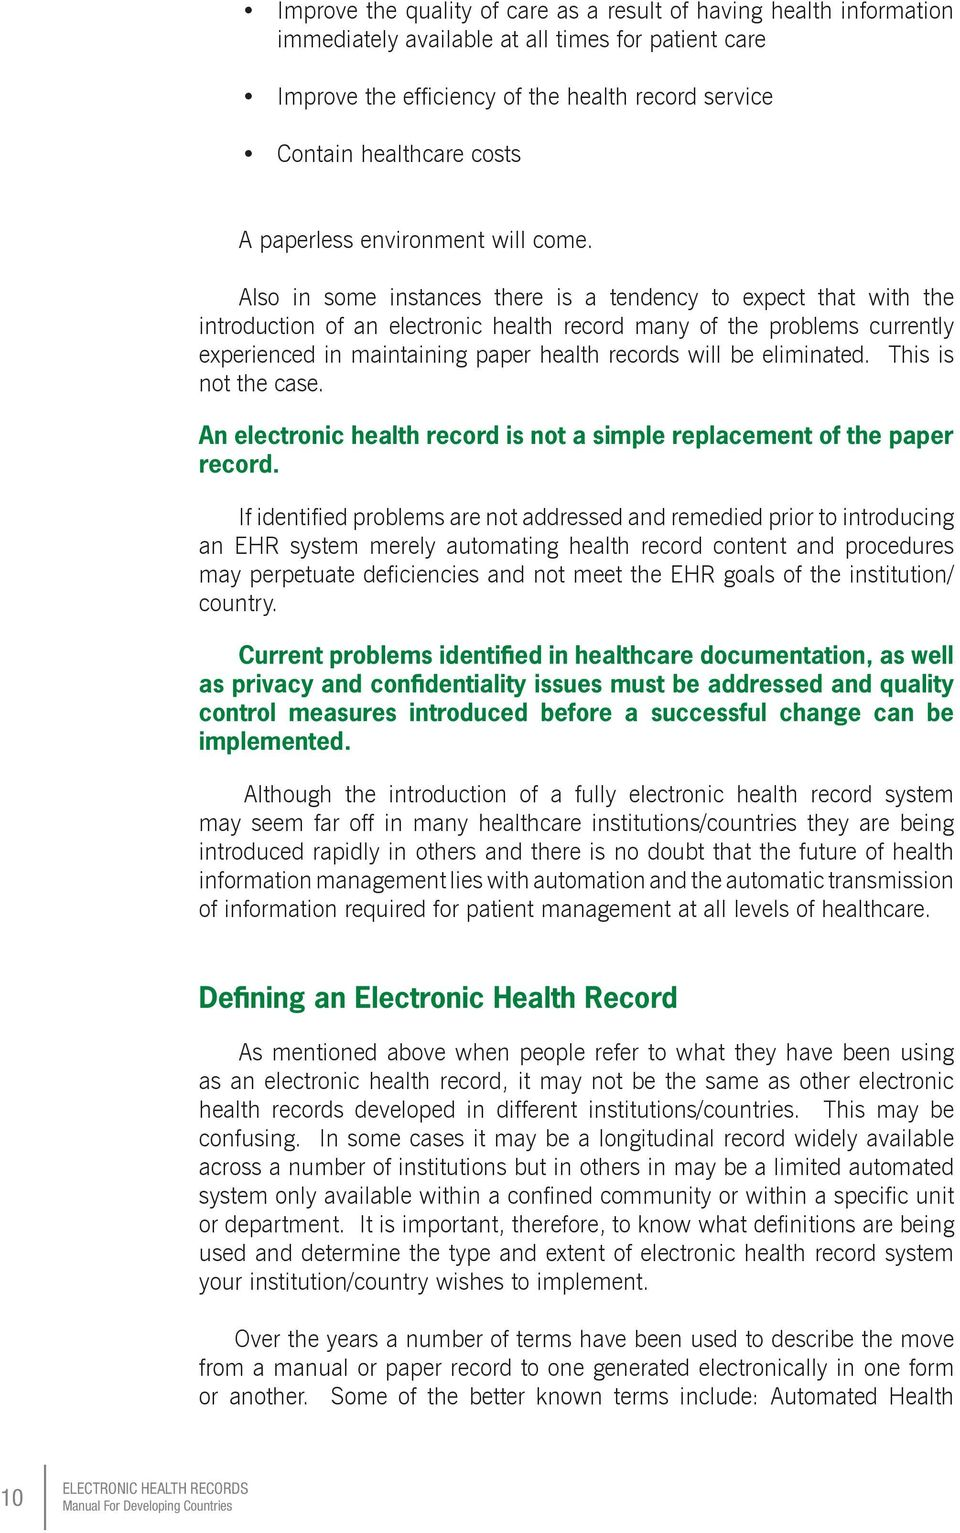 Also in some instances there is a tendency to expect that with the introduction of an electronic health record many of the problems currently experienced in maintaining paper health records will be